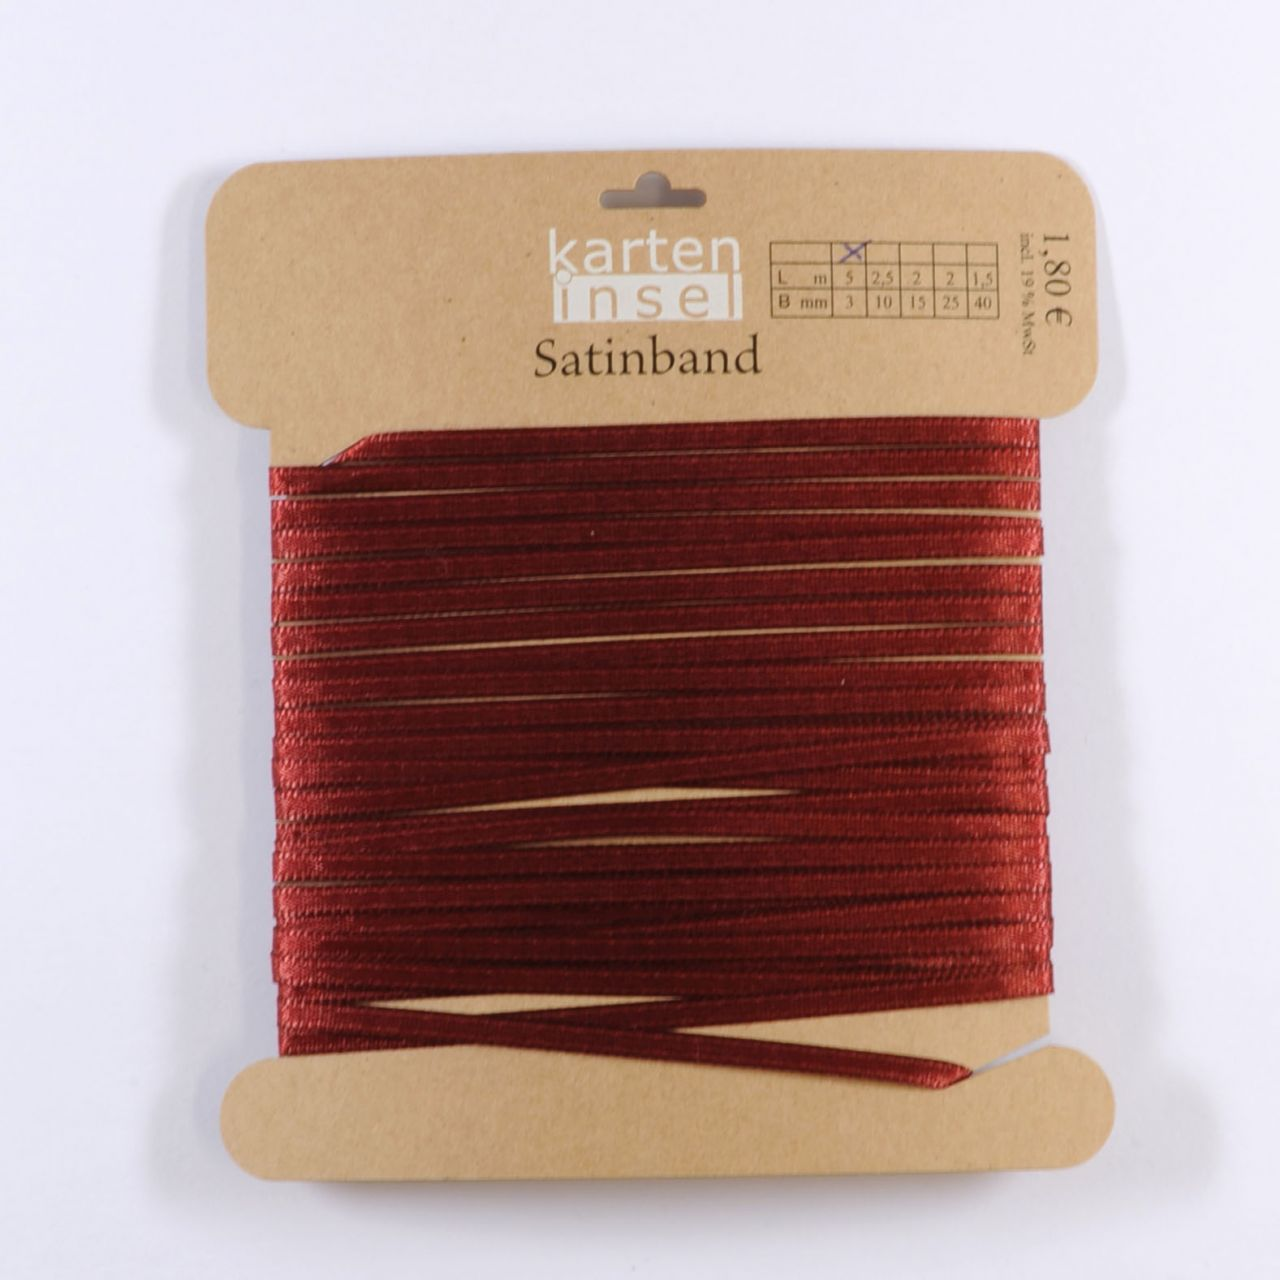 Satinband bordeaux - 3 mm - 5 m